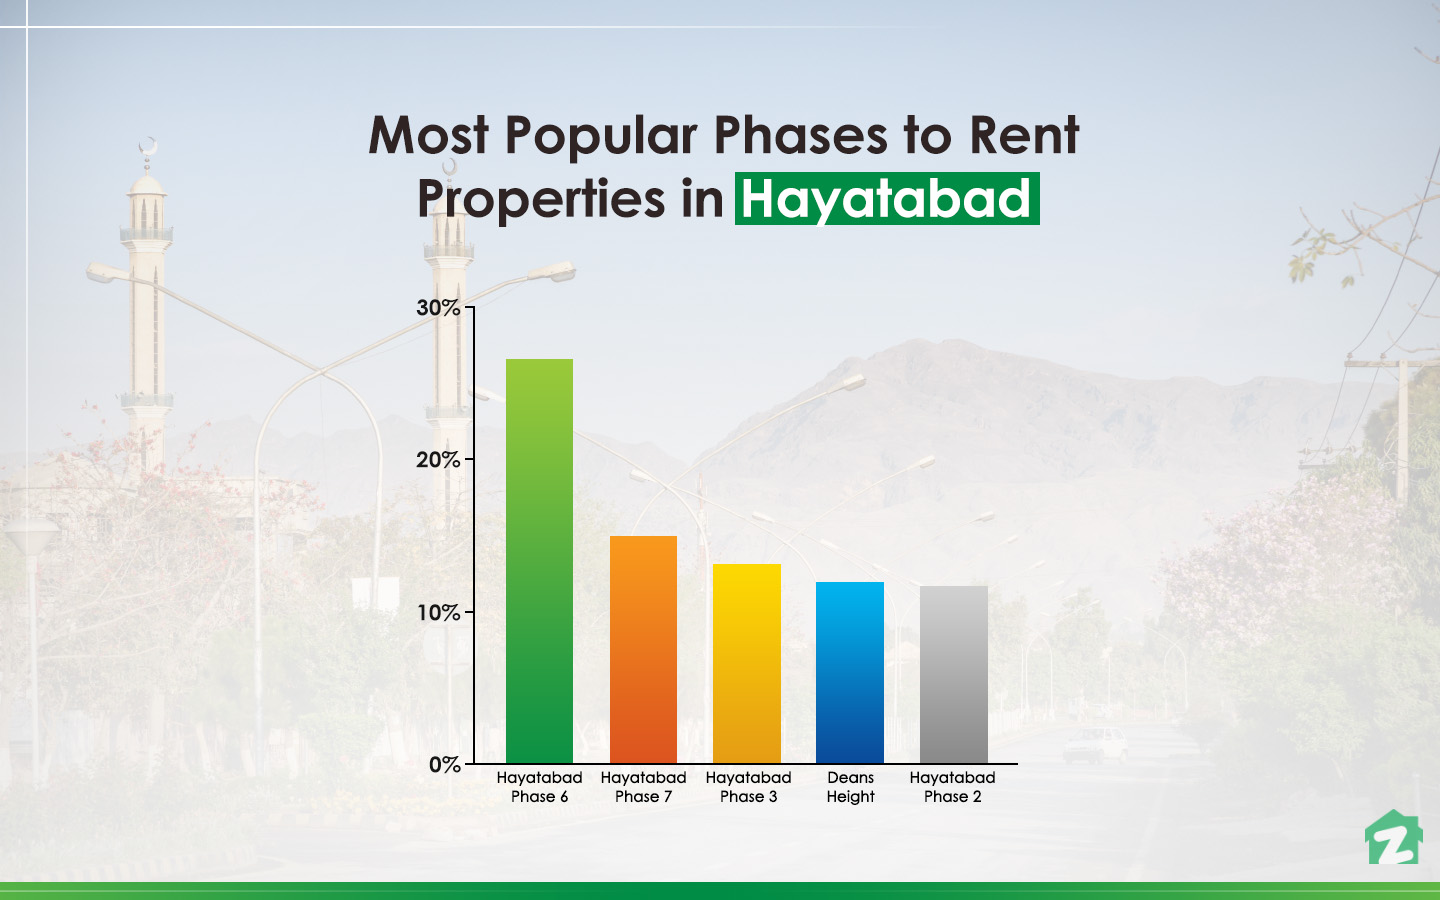 Popular phases for renting properties in Hayatabad